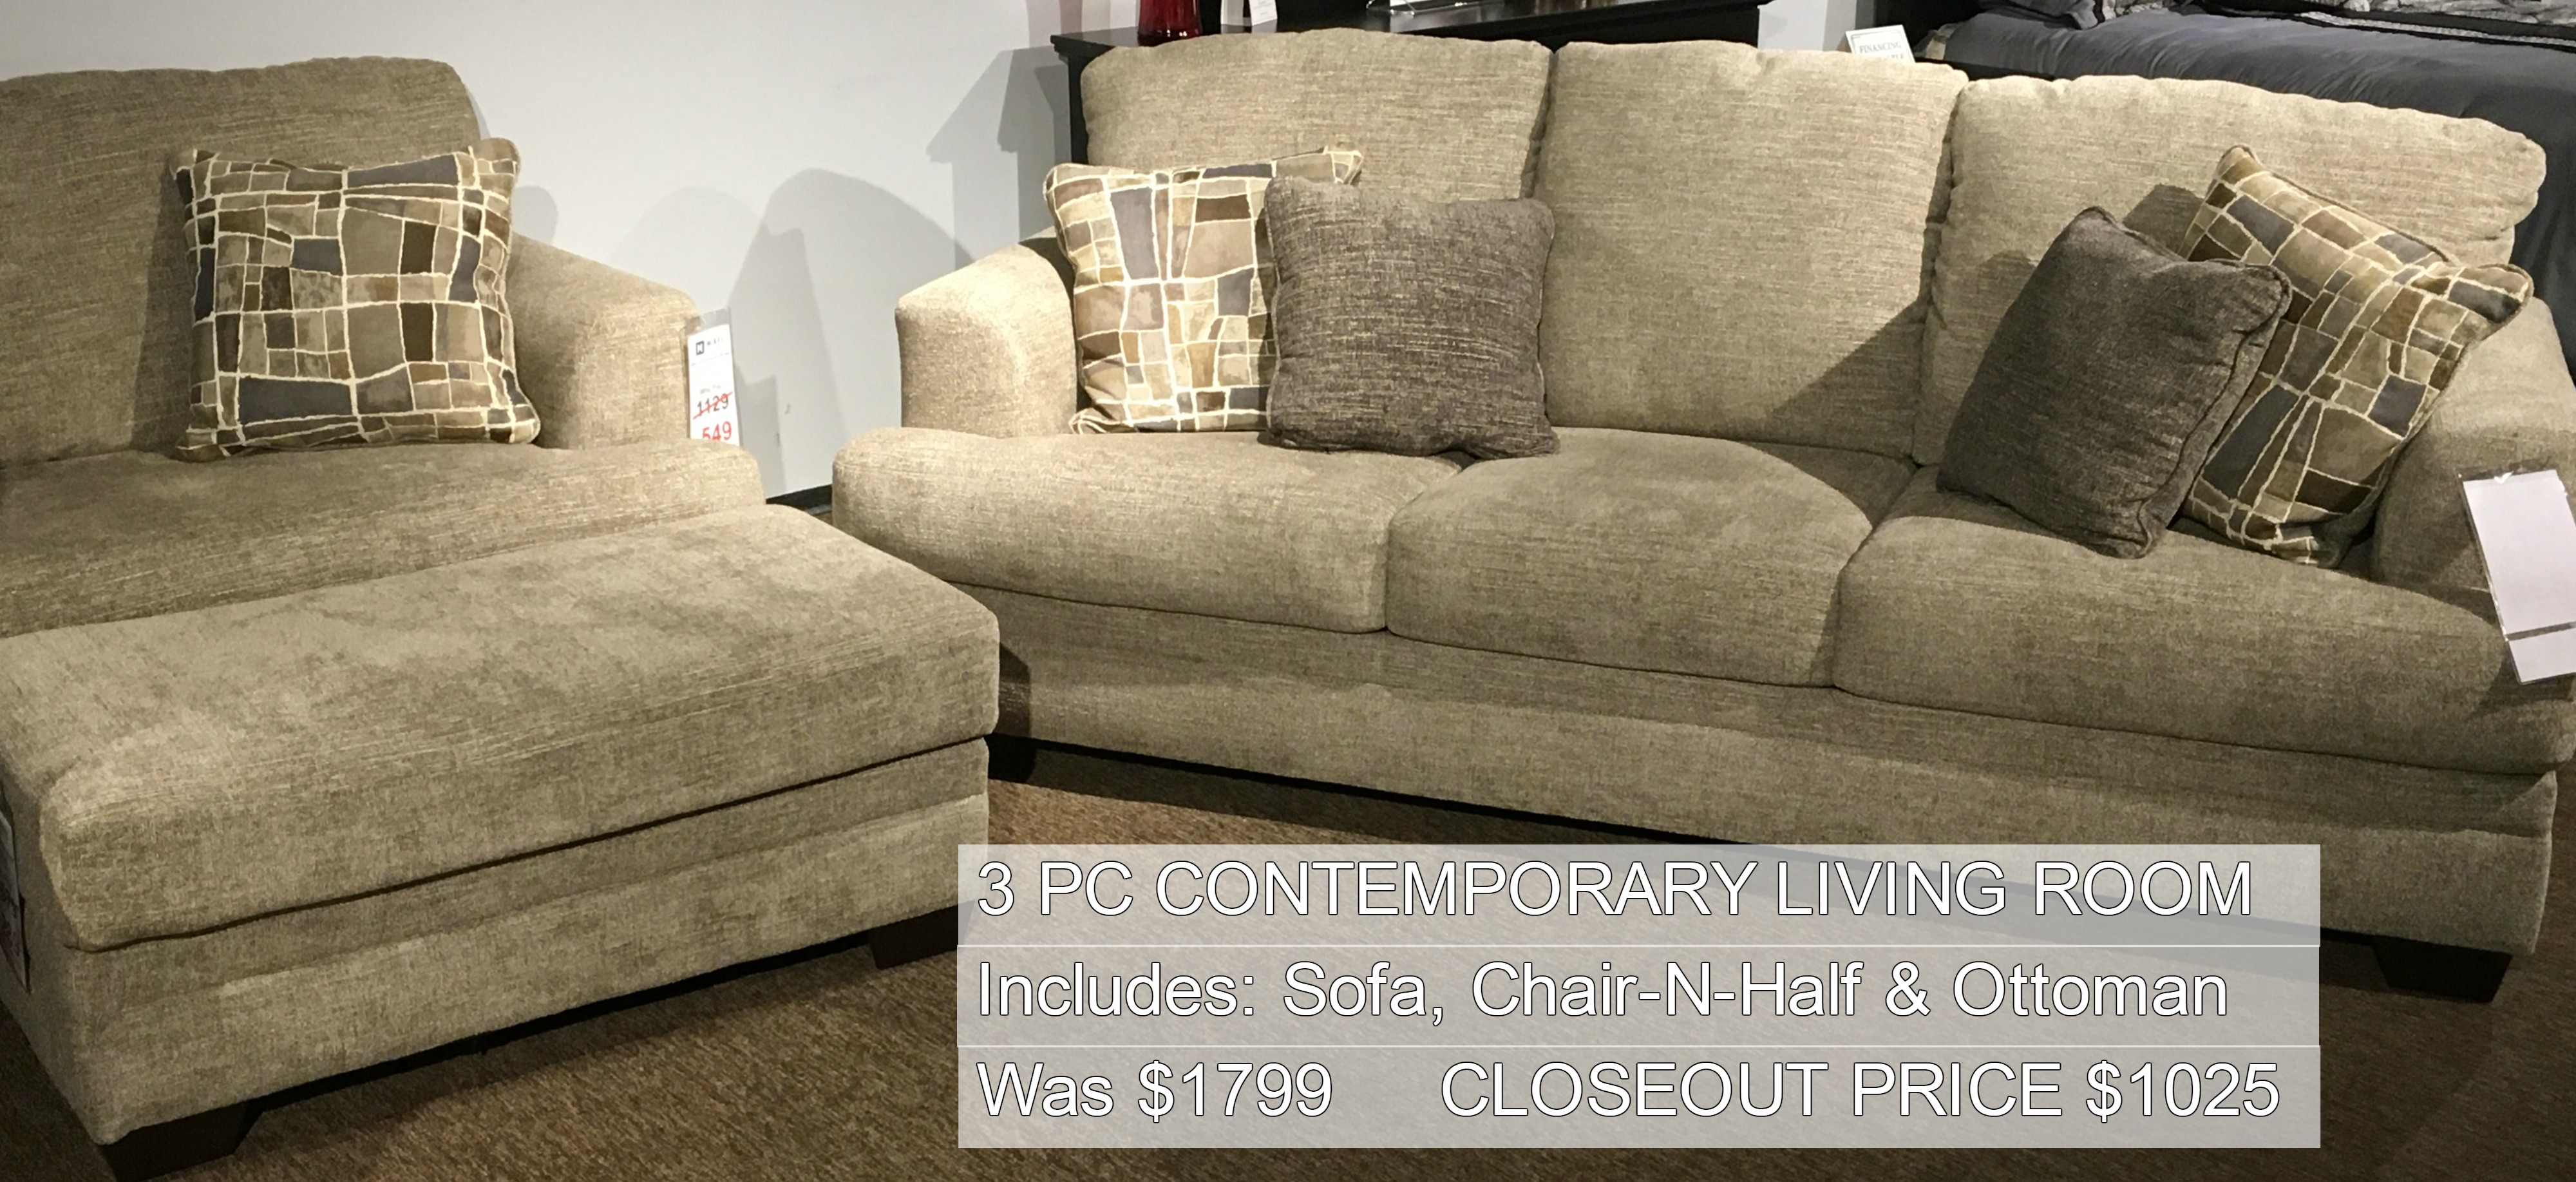 Extreme Value Center Furniture On Sale In Joliet Il